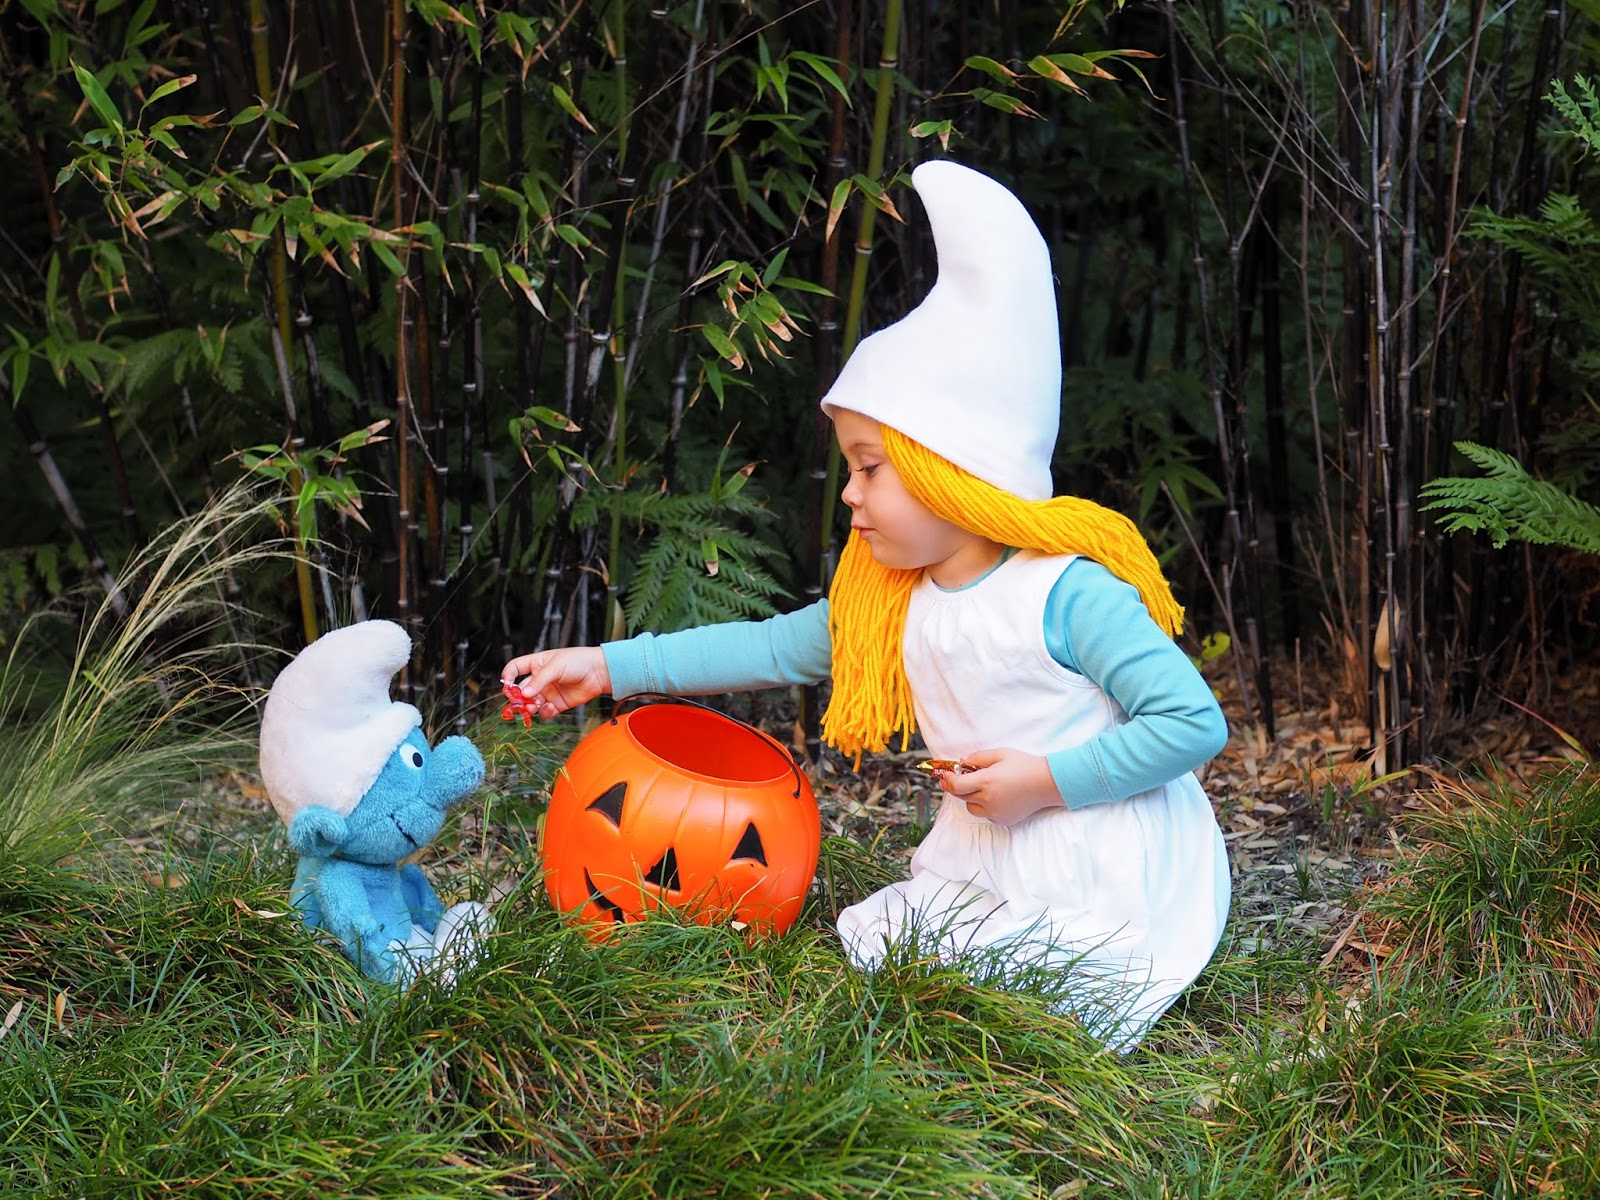 The rest of this costume is simply clothes that your child may already have in their closet or which can be found easily in stores or online. & Little Hiccups: Last Minute Halloween DIY: Smurf Costume